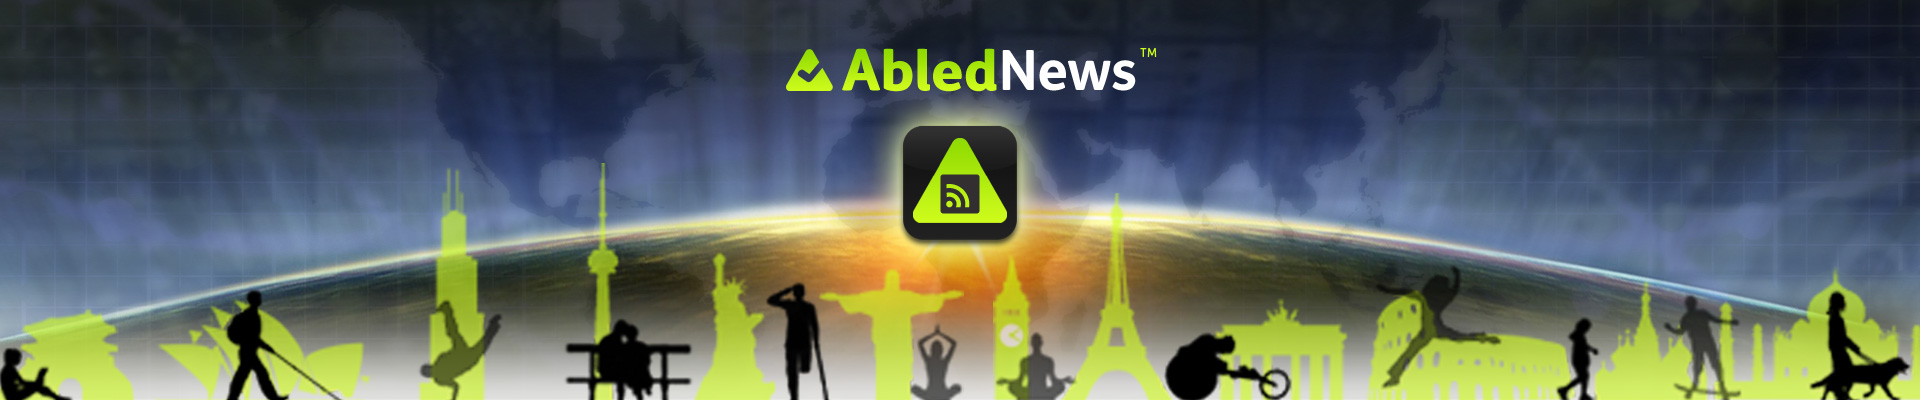 AbledNews Banner shows a panorama of differently-abled people as black silhouettes against a horizon of world city landmarks such as Big Ben, The CN Tower, the Sydney Opera House and so on in a transparent green against a sunrise over the Earth as seen from space with the AbledNews logo at the top over an icon of an RSS feed in the same green set inside a small rounded square set inside the rounded green Abled triangle set against a black rounded square icon box.